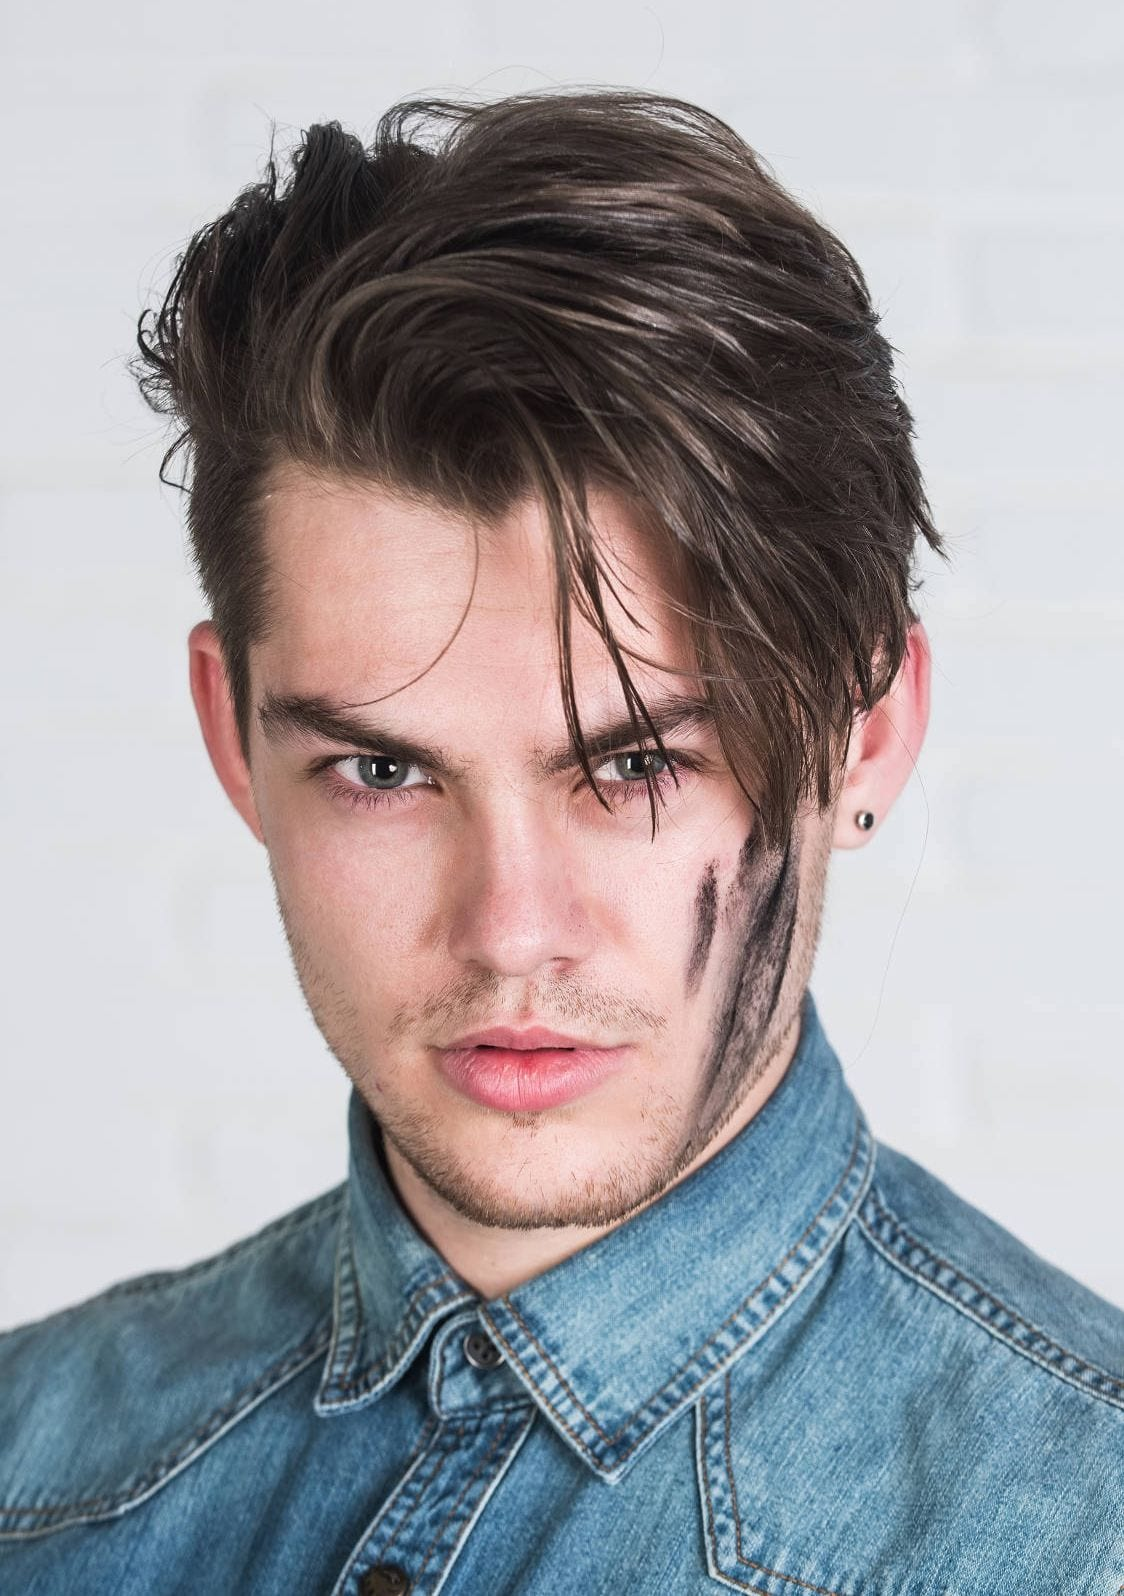 20 Edgy Men S Haircuts You Need To Know